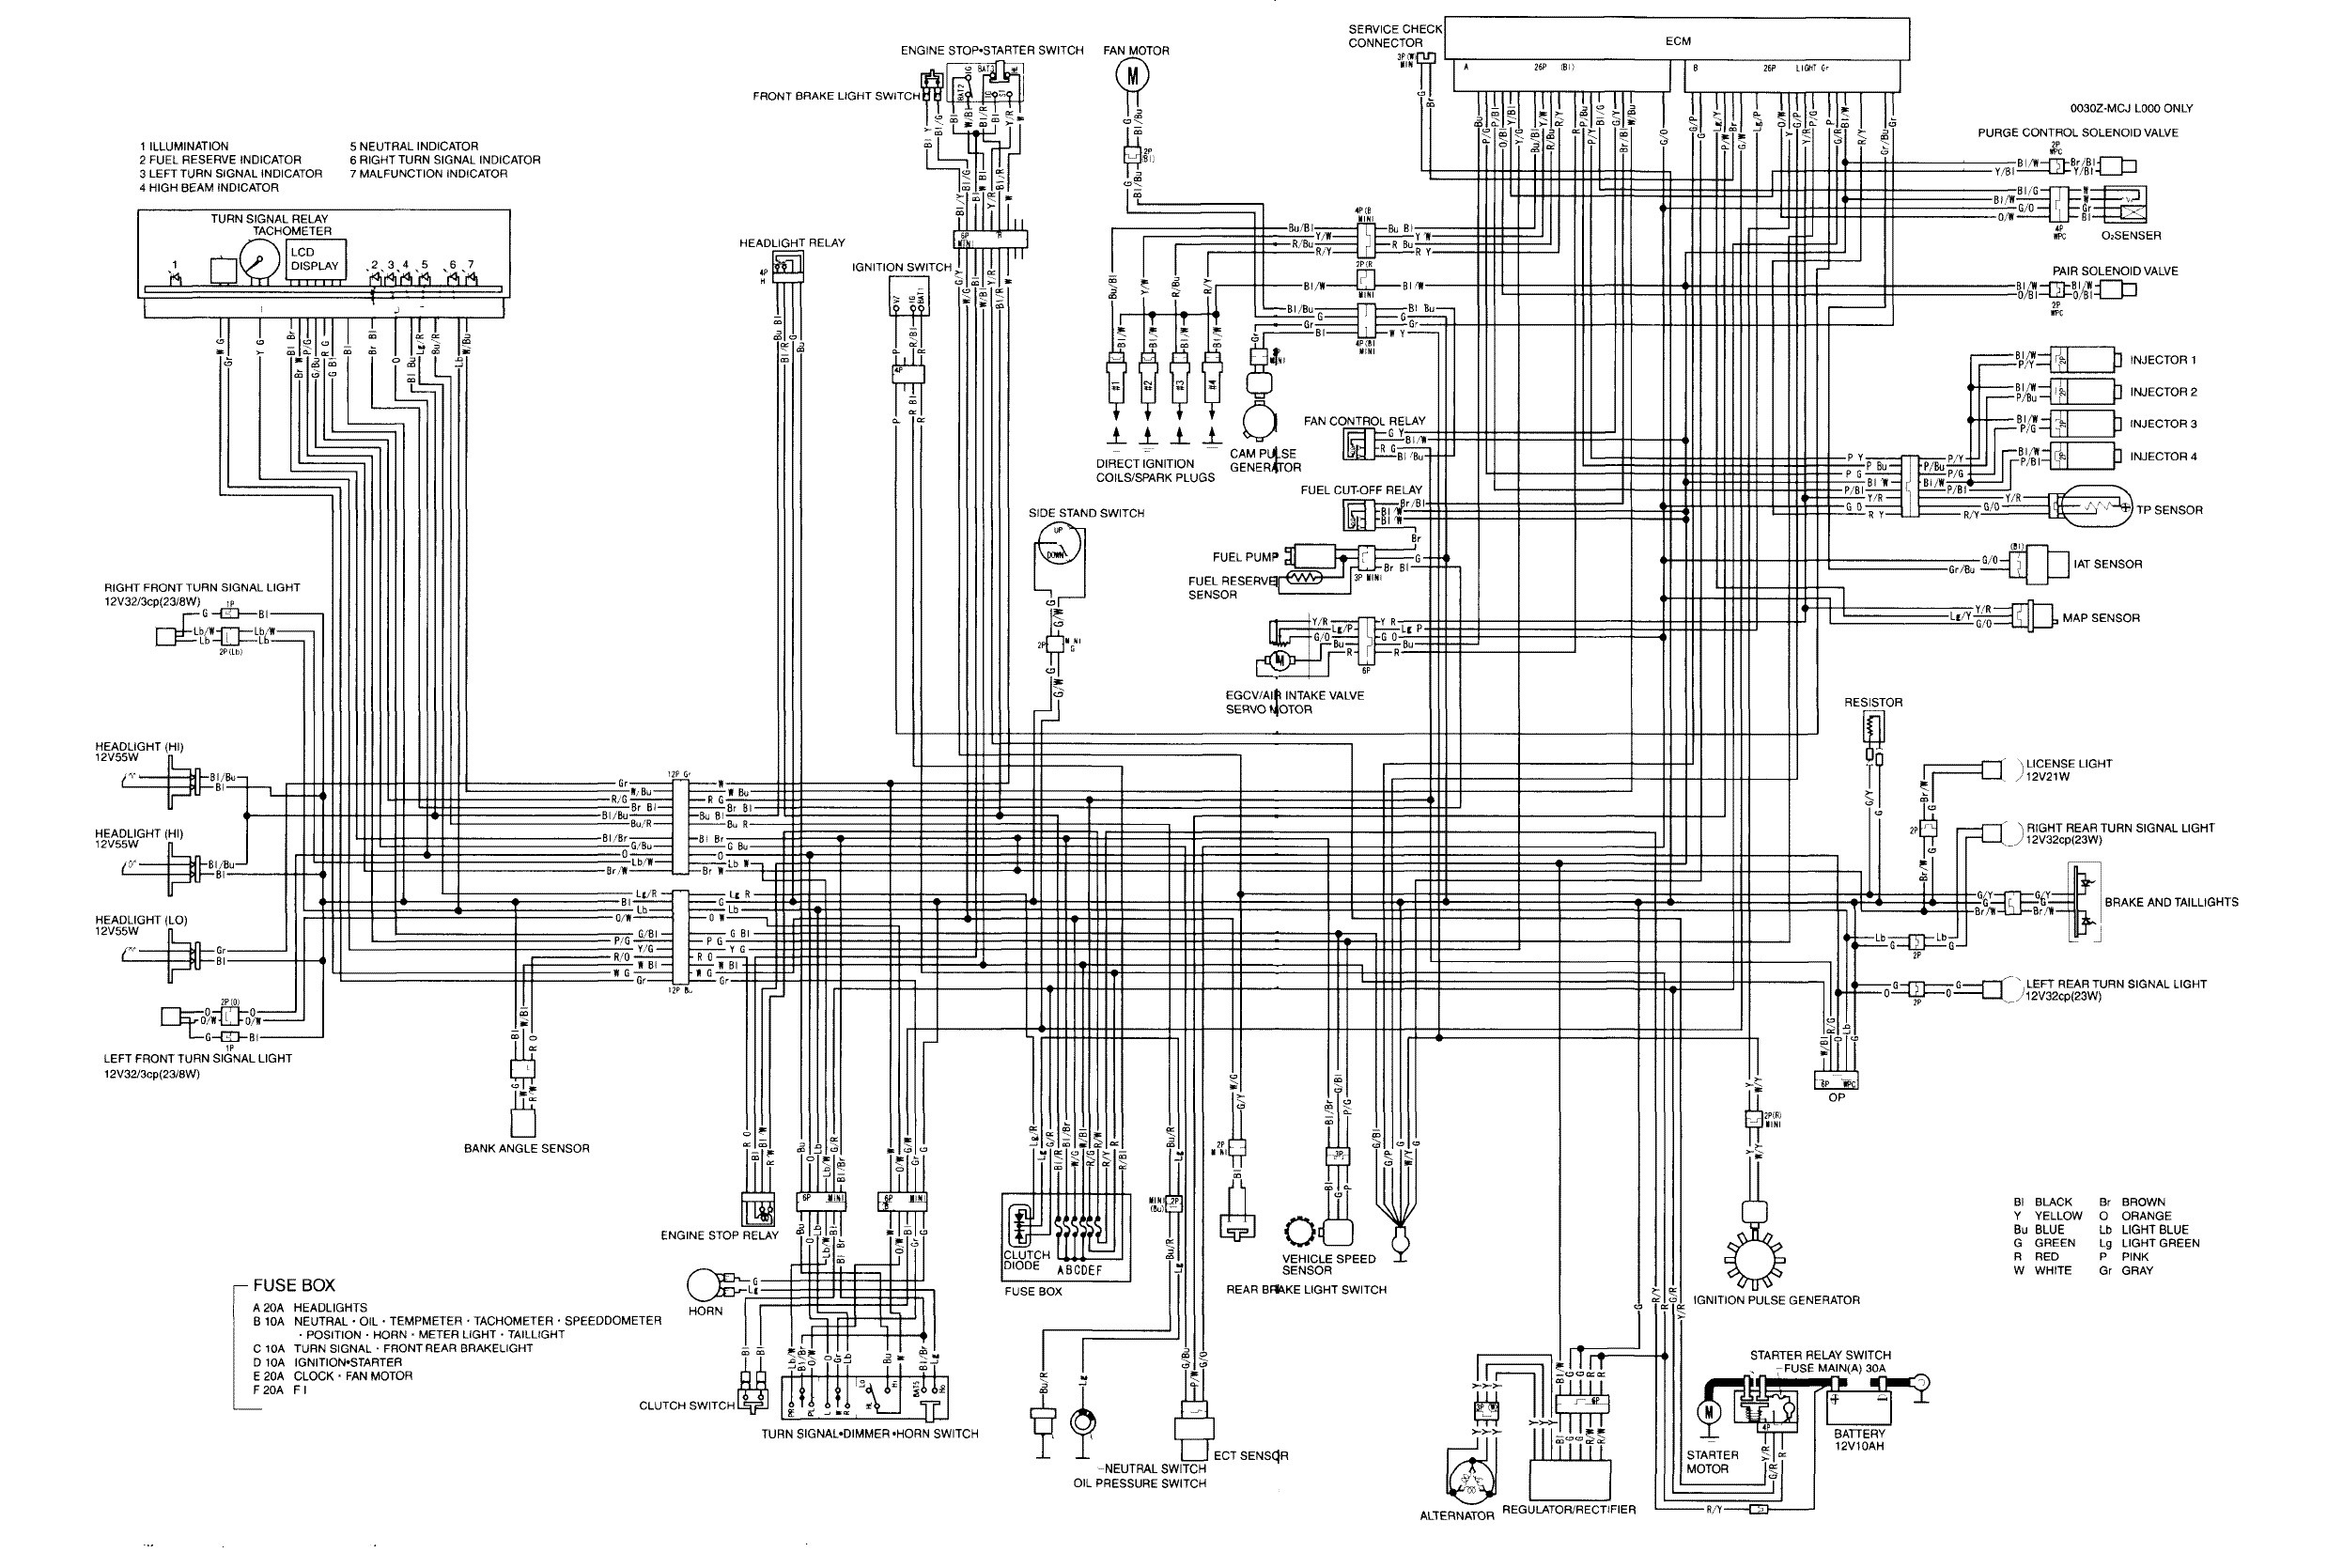 DIAGRAM] 2004 Cbr 600 F4 Wiring Diagram FULL Version HD Quality Wiring  Diagram - STRUCTUREDSETTLEME.NIBERMA.FRstructuredsettleme.niberma.fr